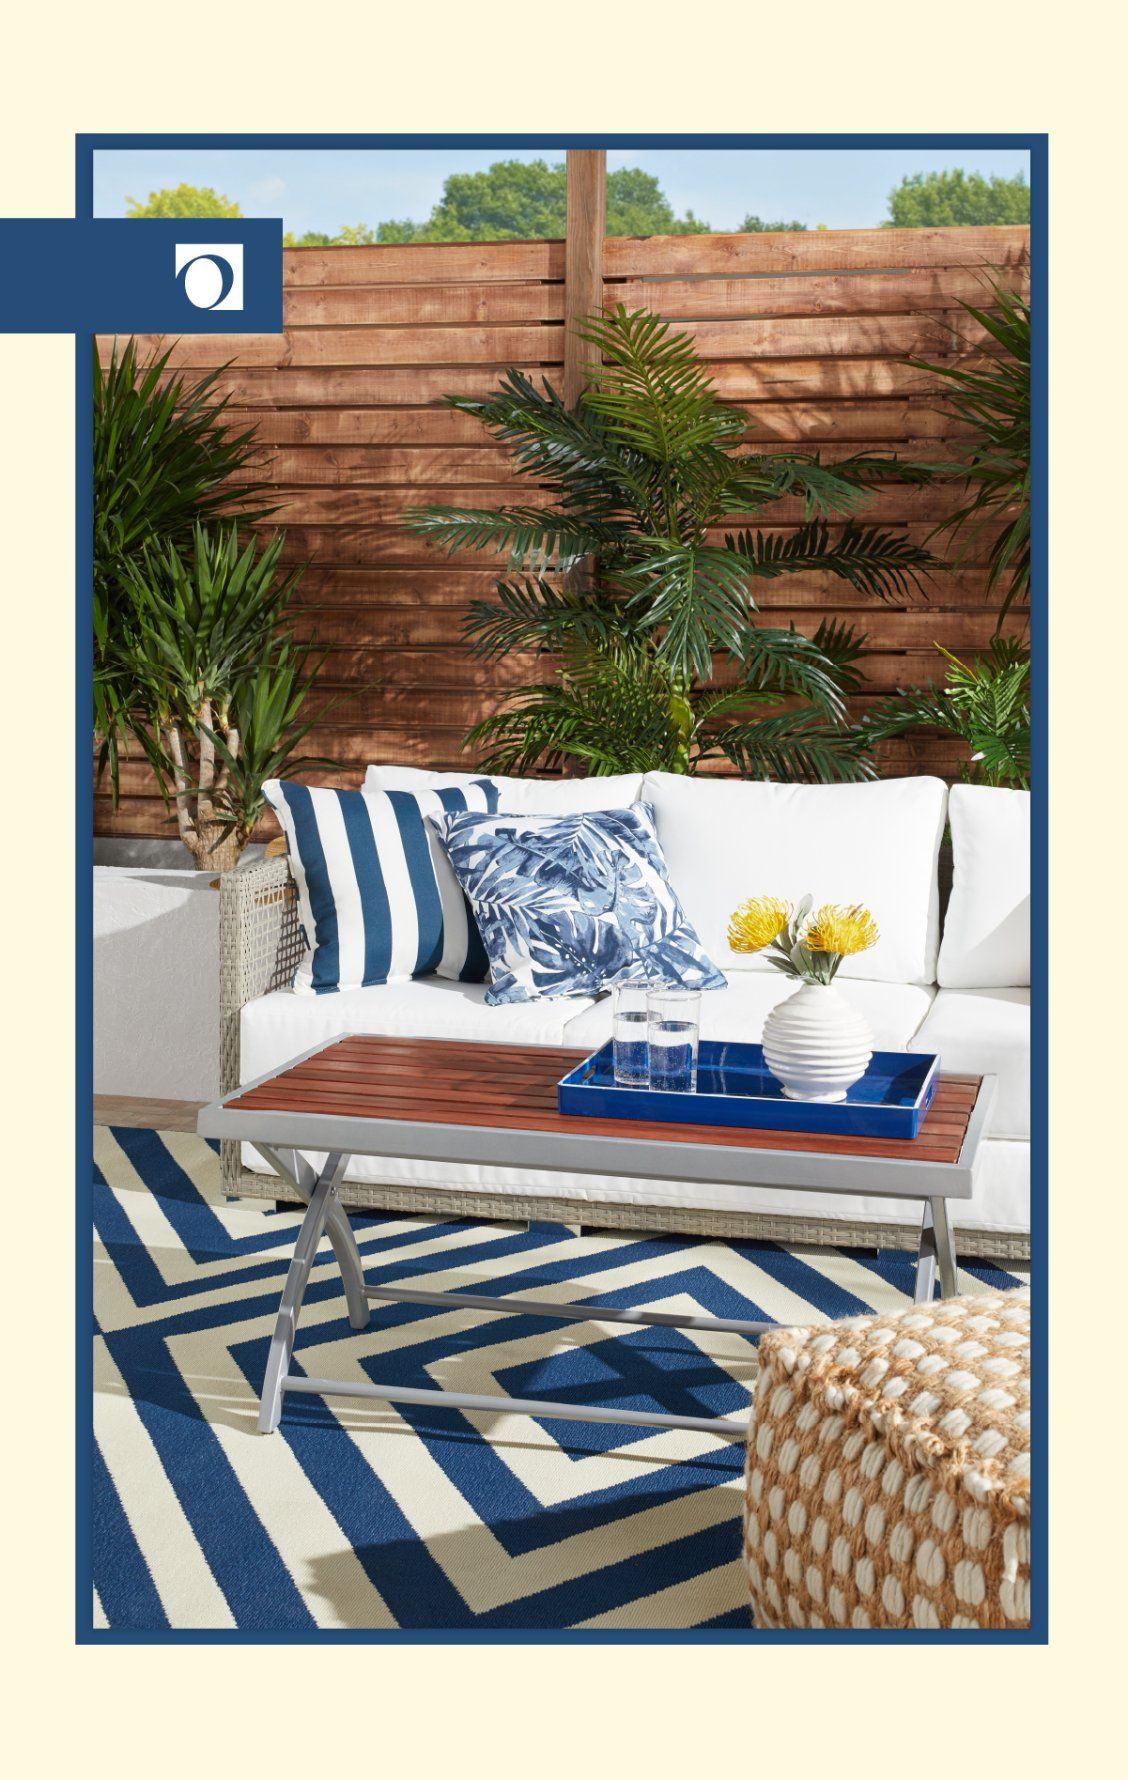 Our Best Patio Furniture Deals Patio Furniture Deals Outdoor Sofa Patio Seating Best deals on outdoor furniture